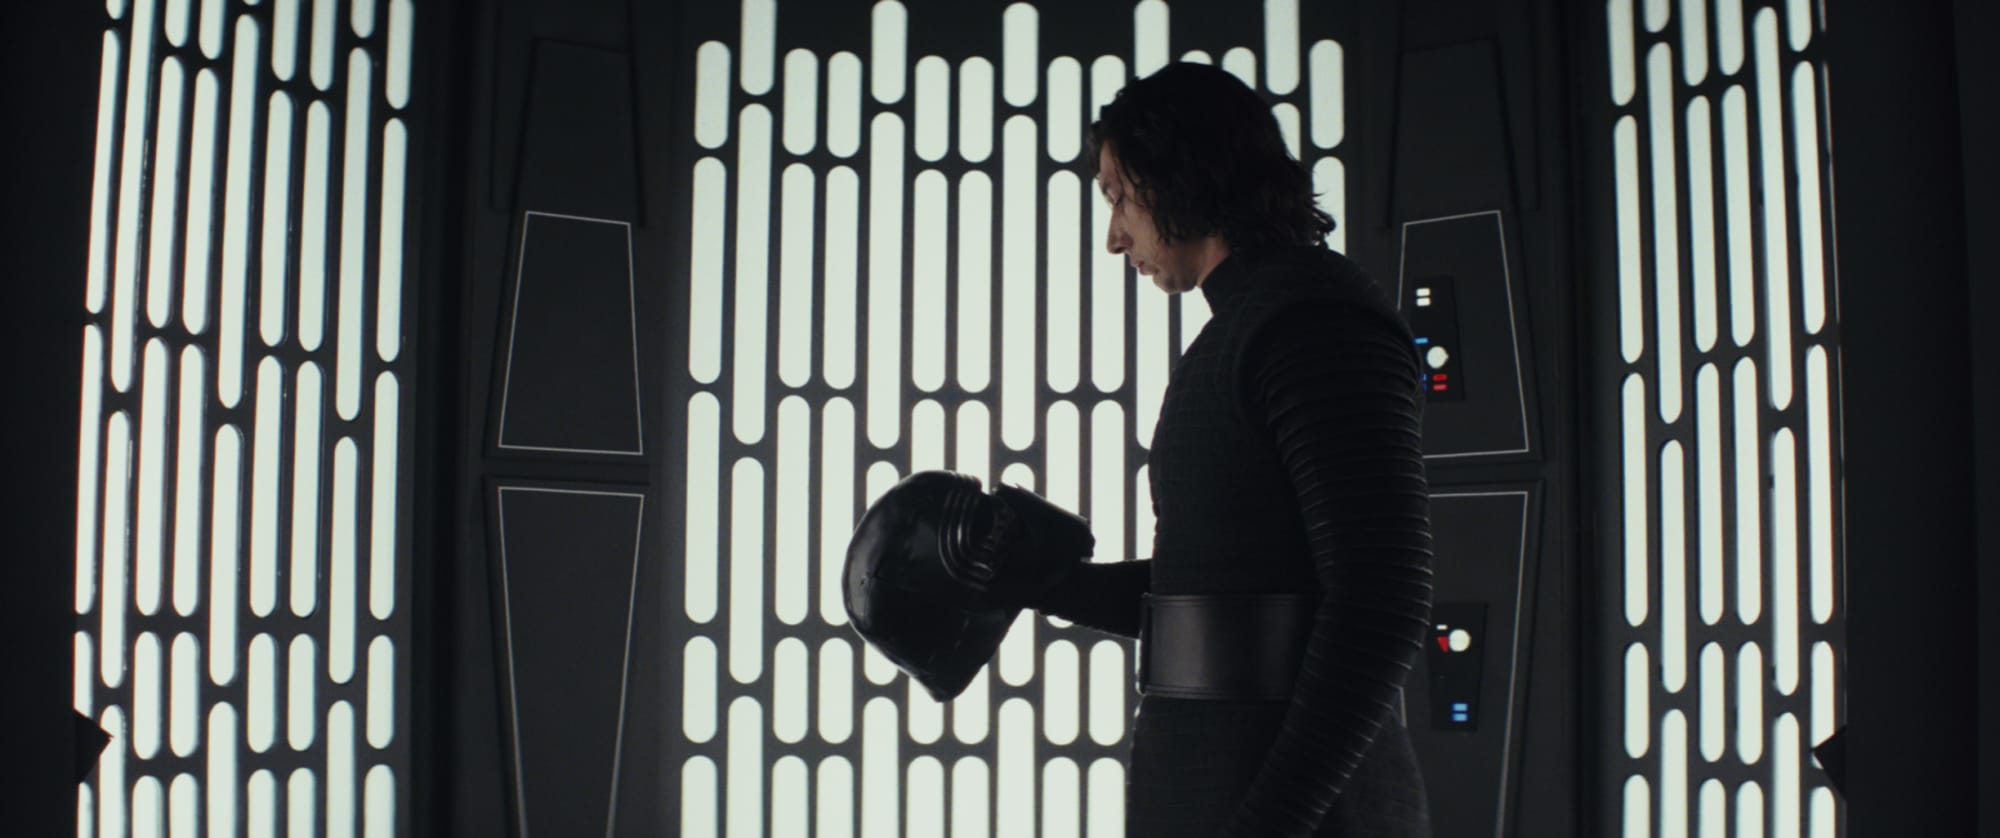 Star Wars fan art brings Kylo Ren and The Child together